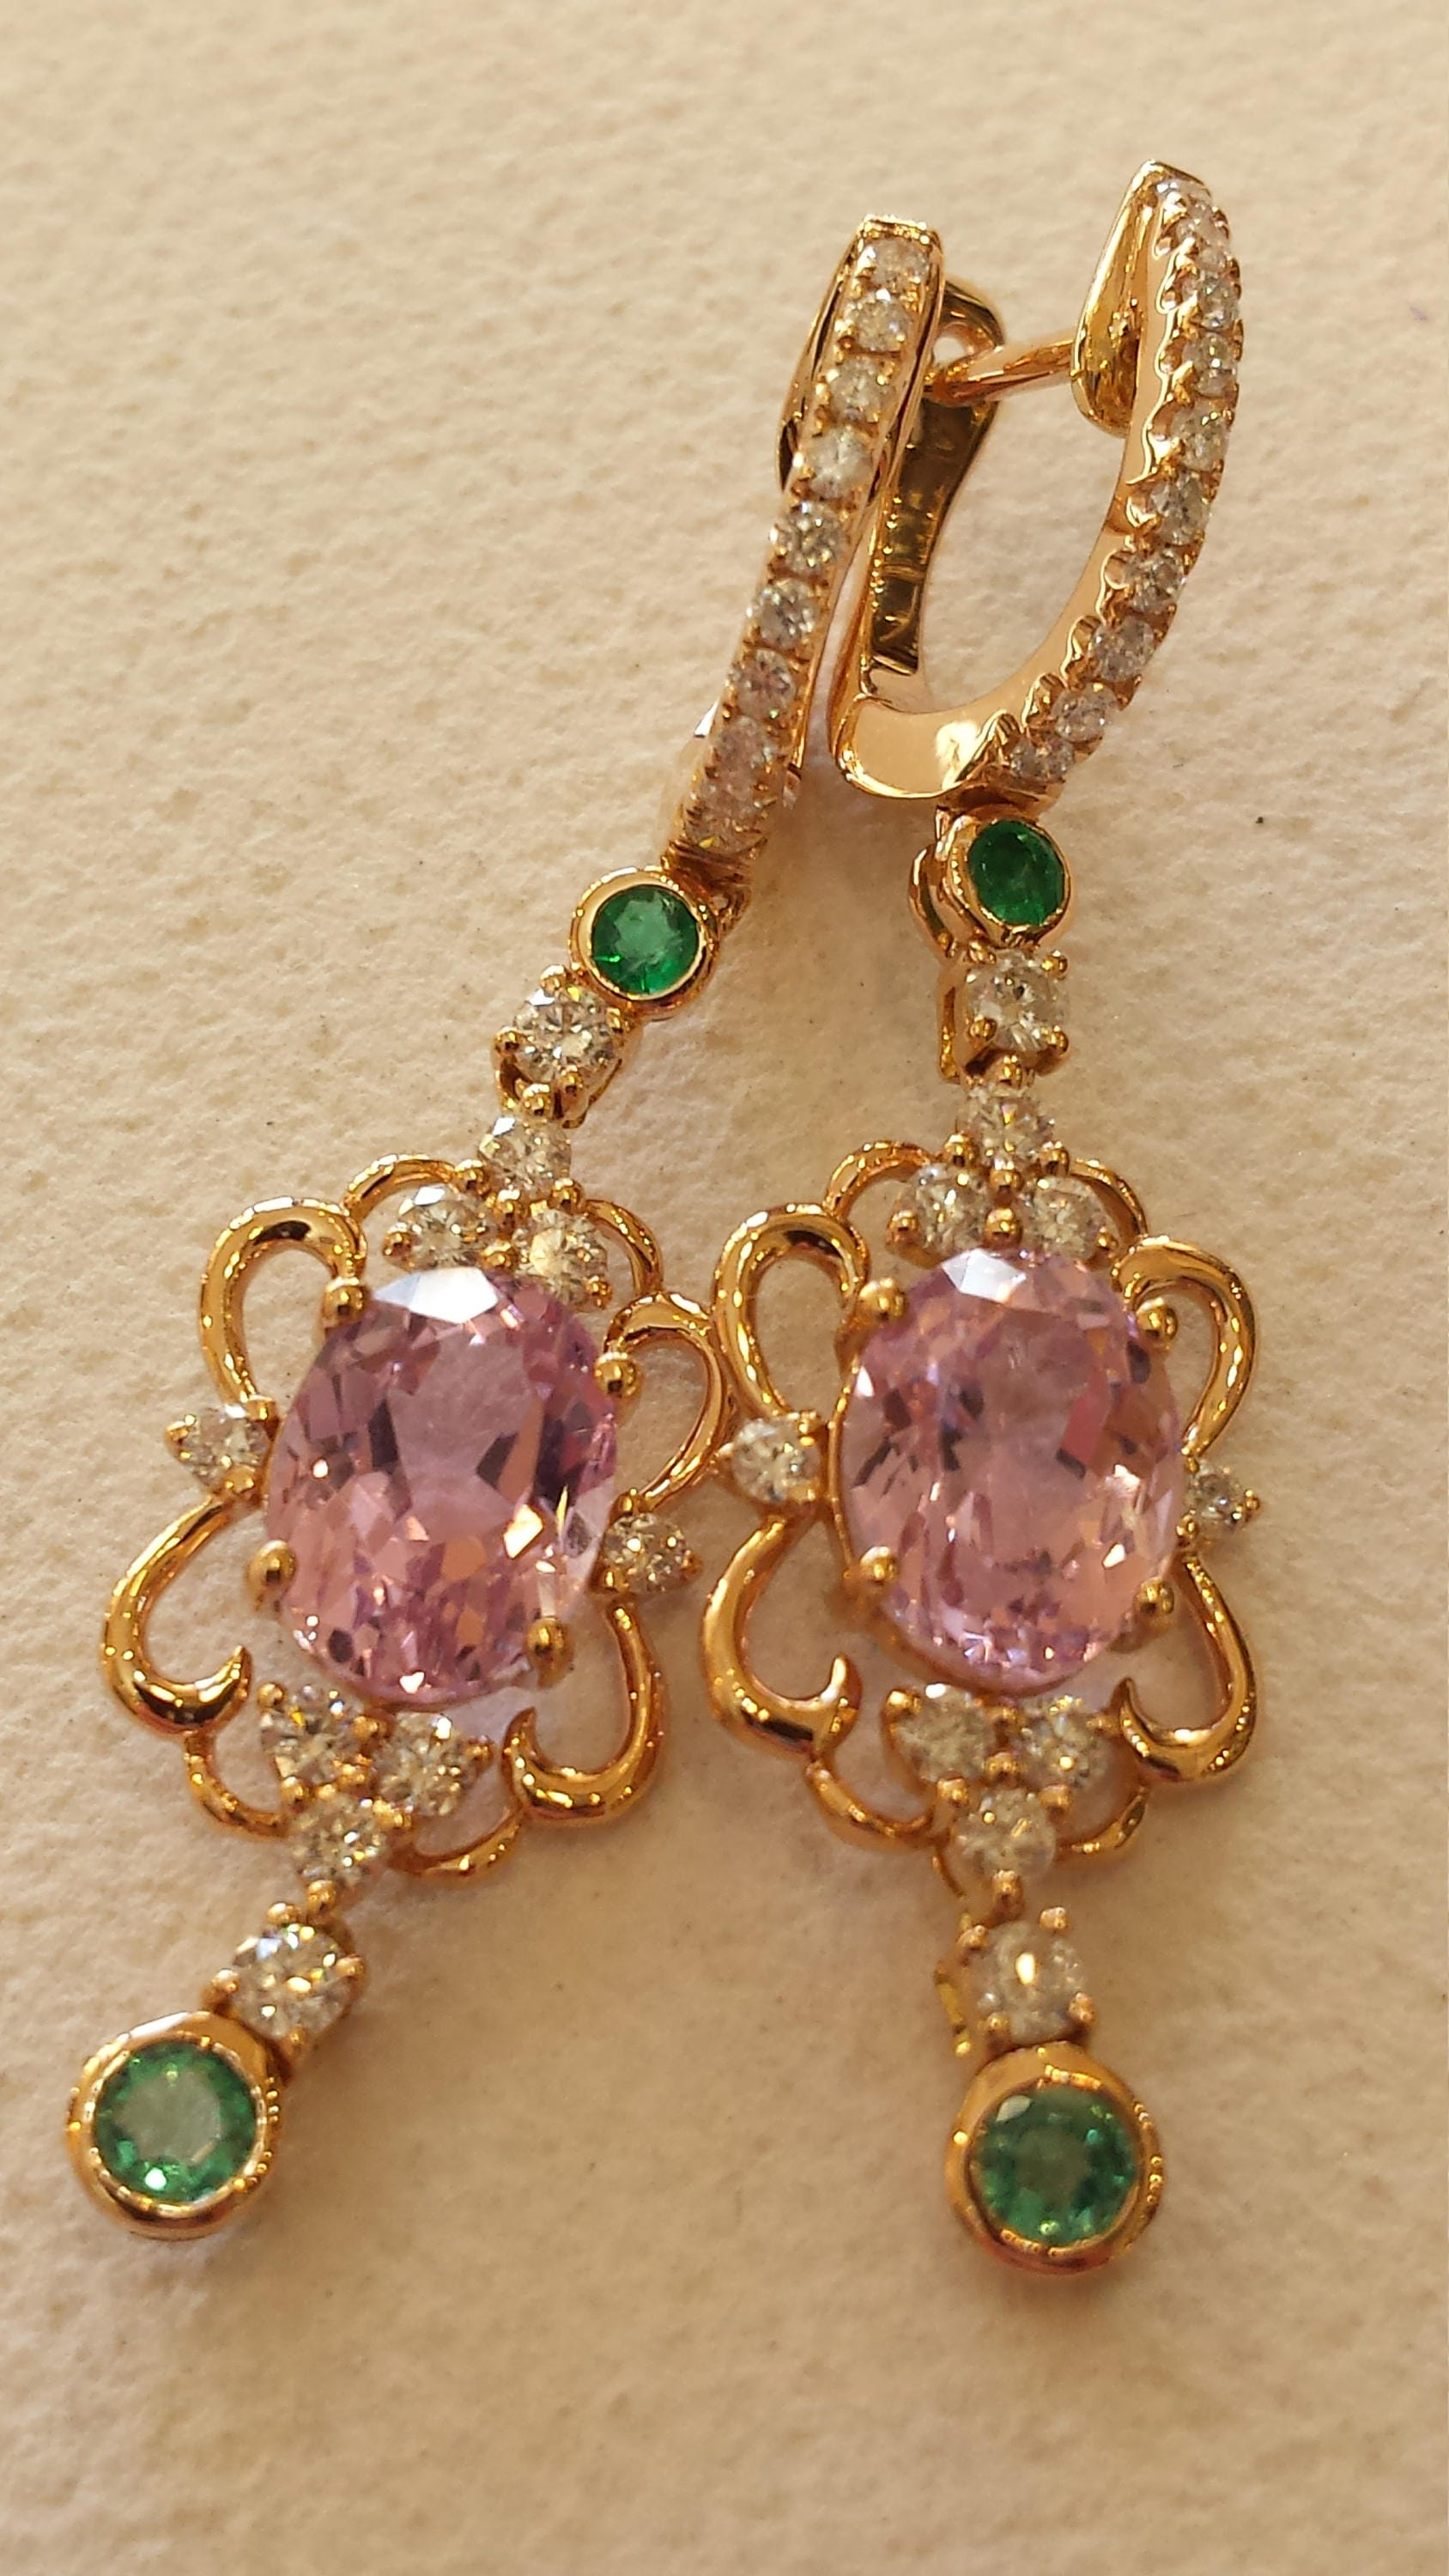 to be relatively care should sharp kunzite in its my education break earrings the landed handled distinct cleavage with due when but jewelry a gemstones place wrong blow hard cms is can